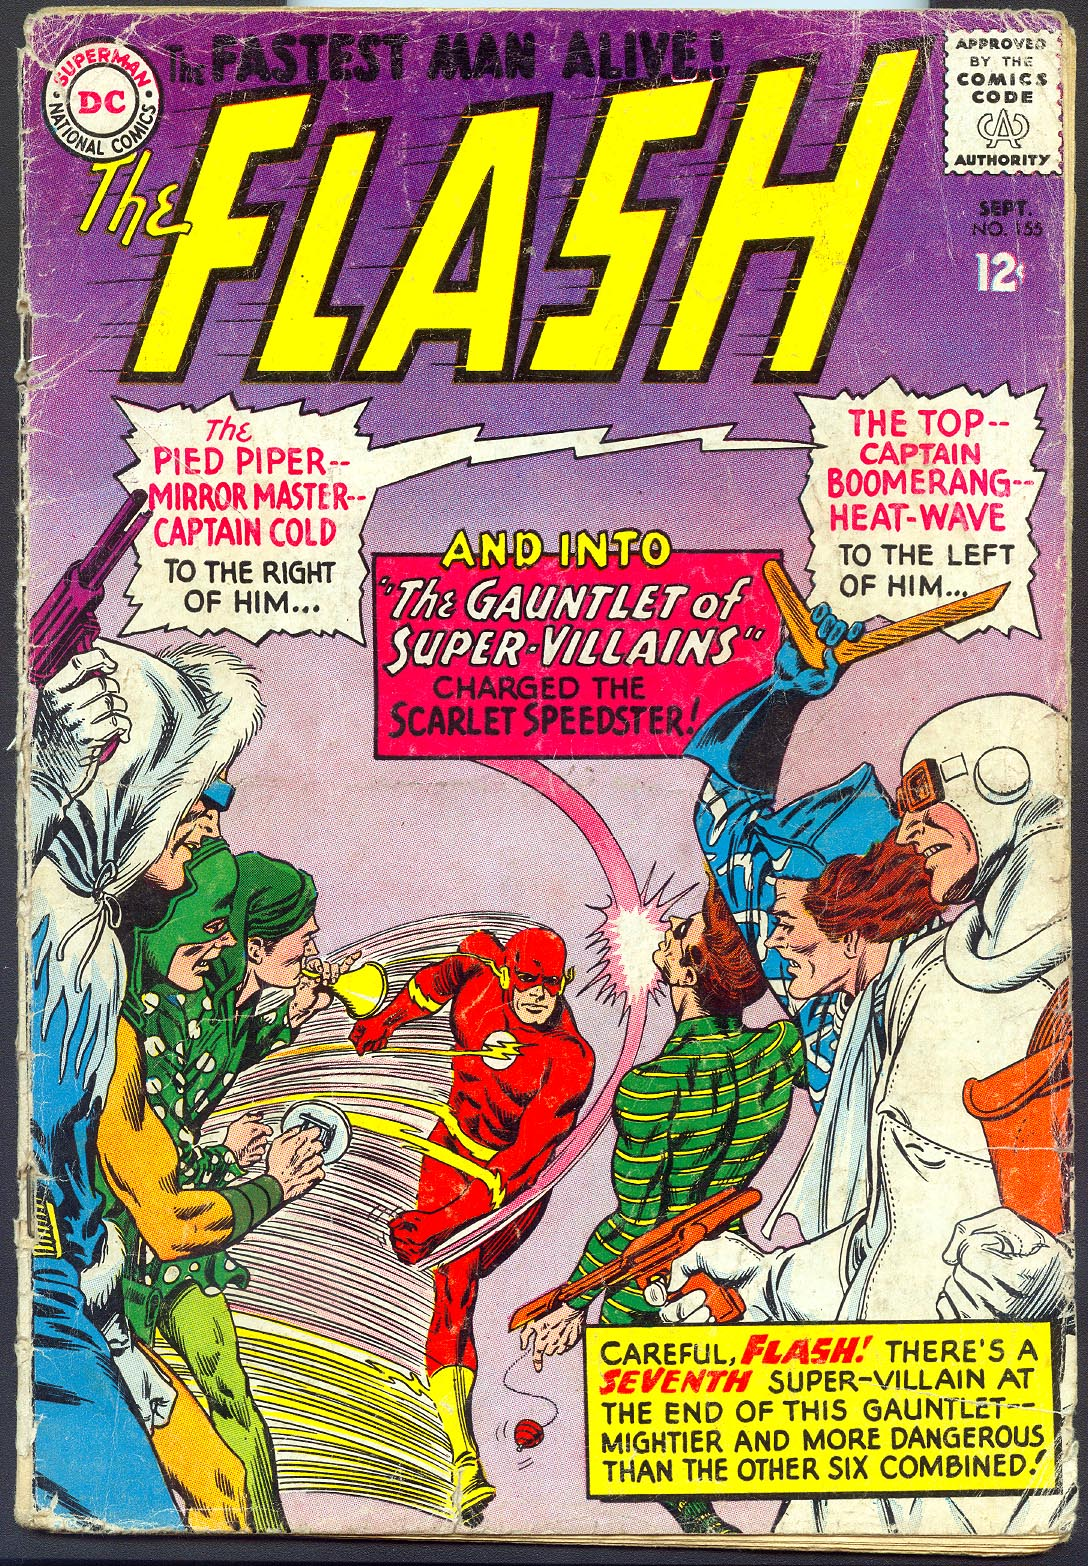 Flash vol 1 - 155 -G